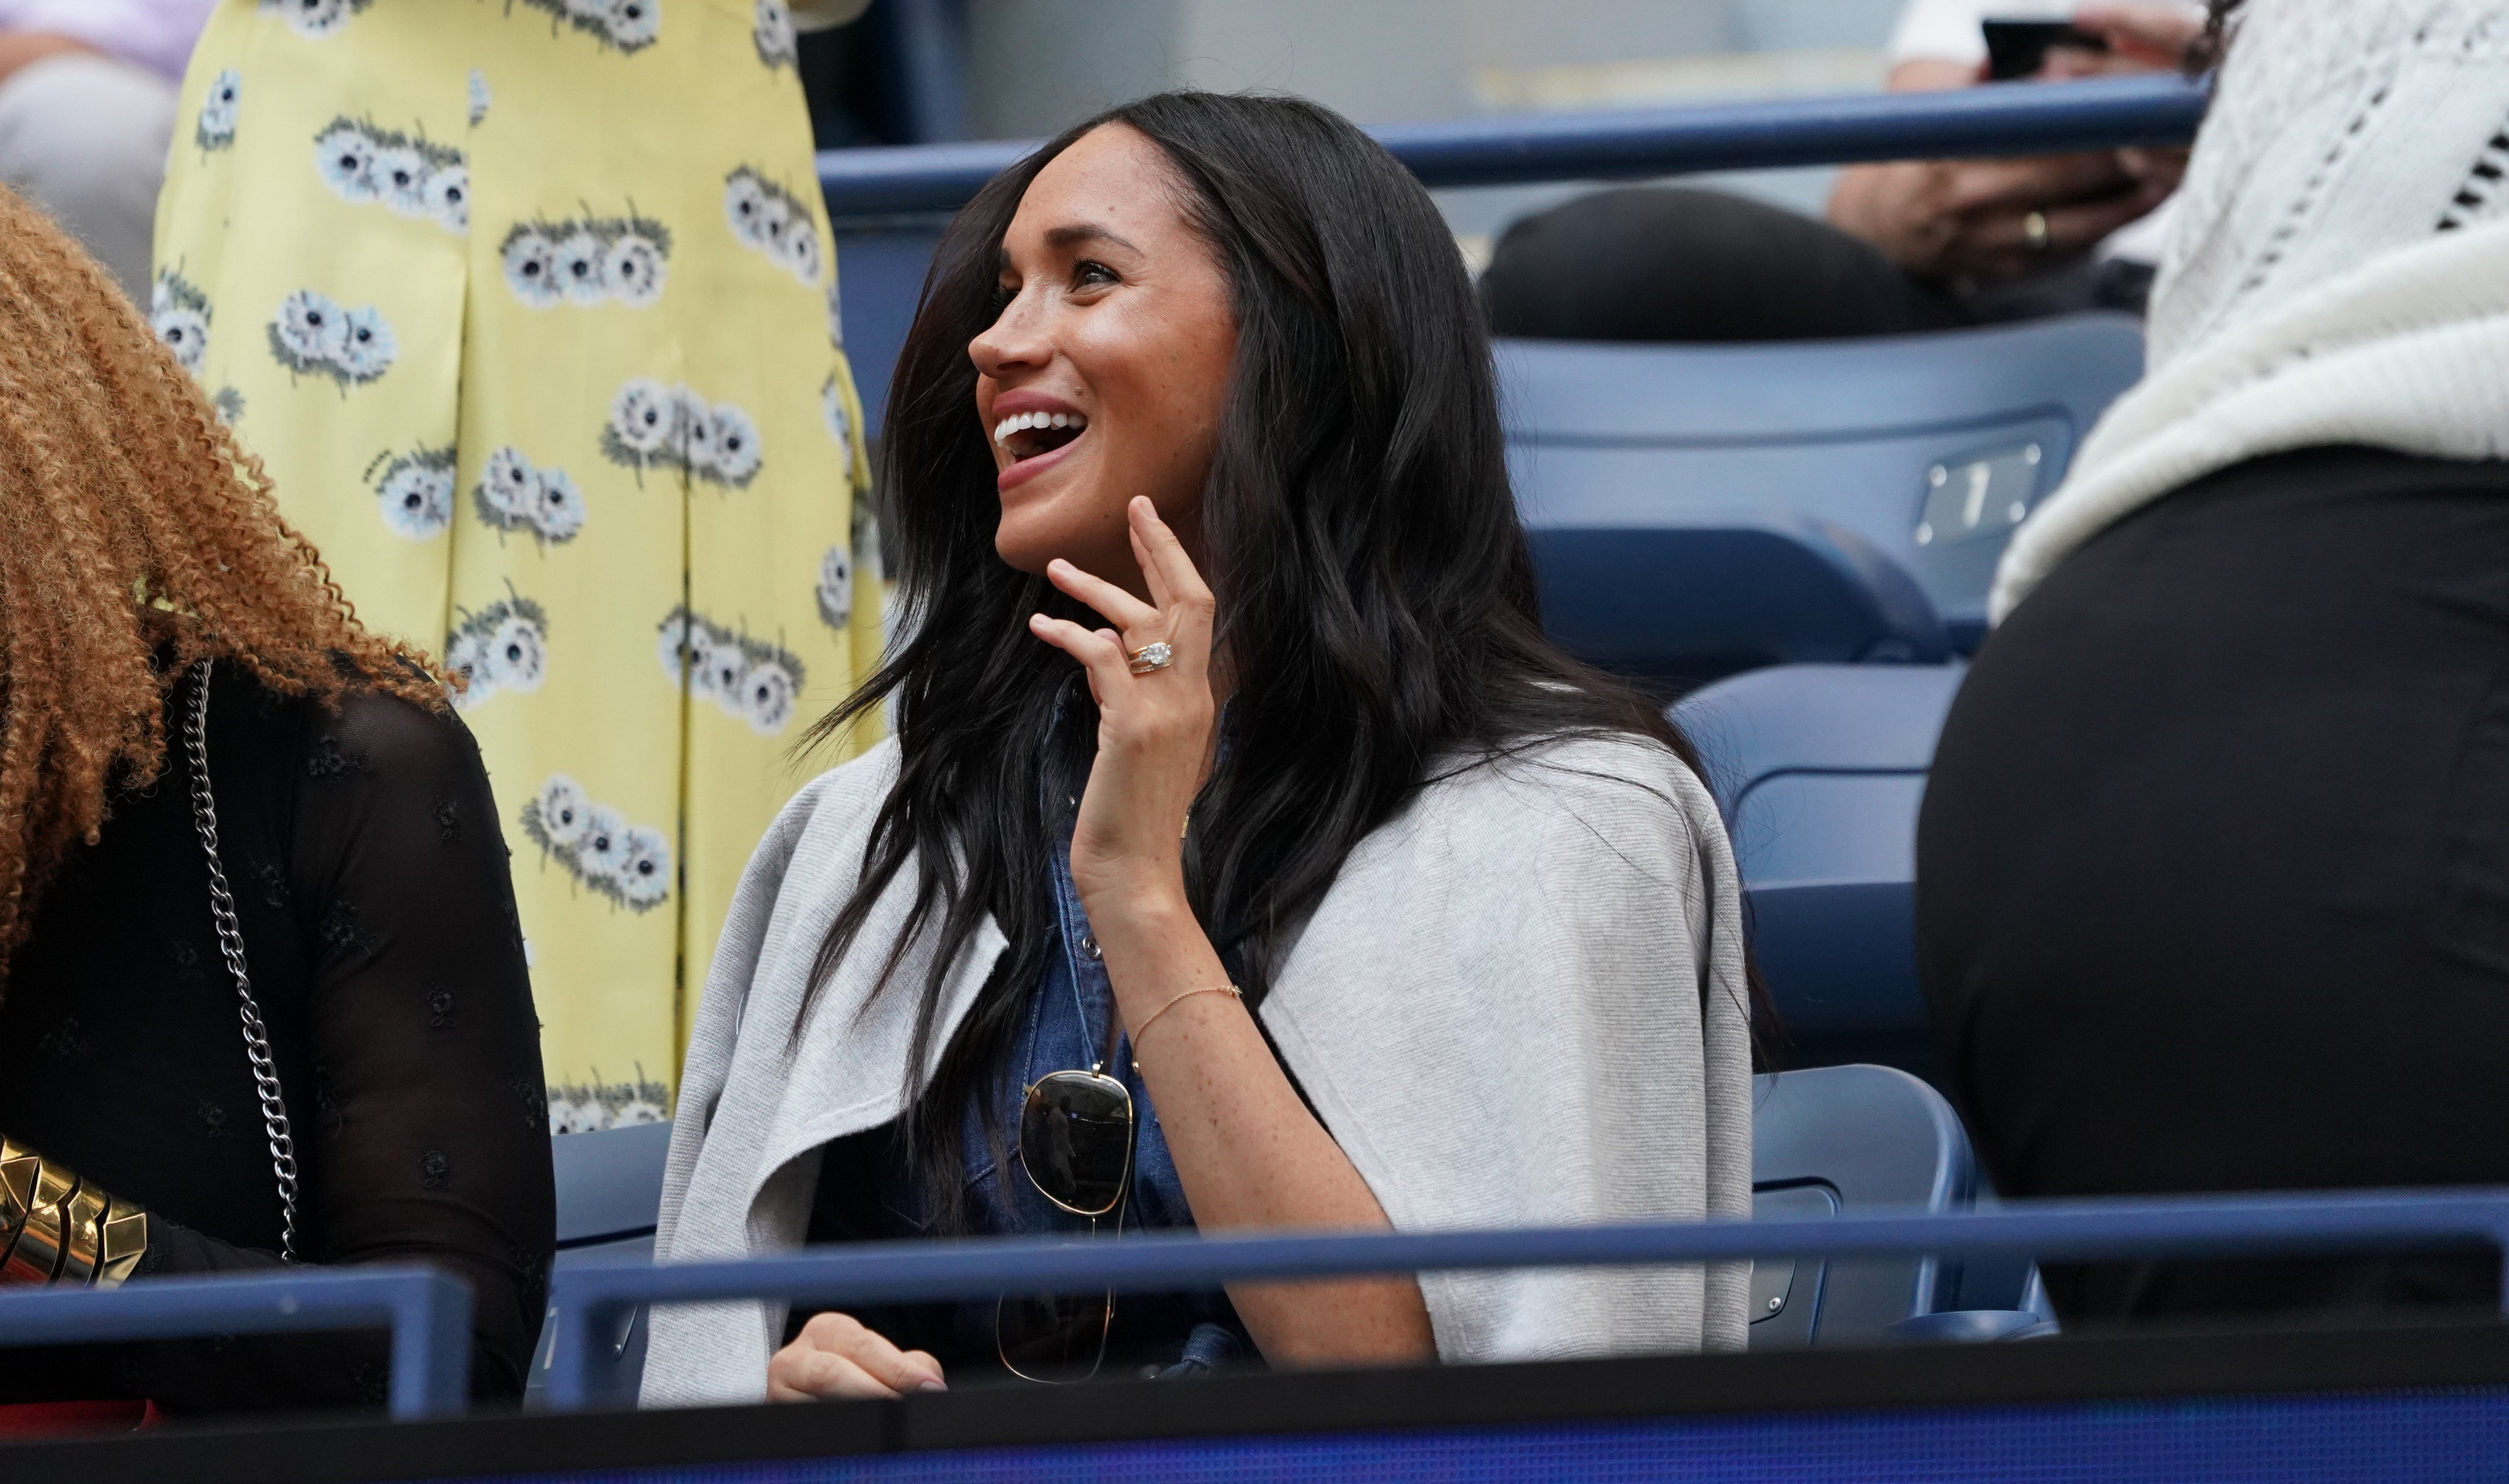 See Every Photo of Meghan Markle Cheering on Serena Williams at the US Open Final